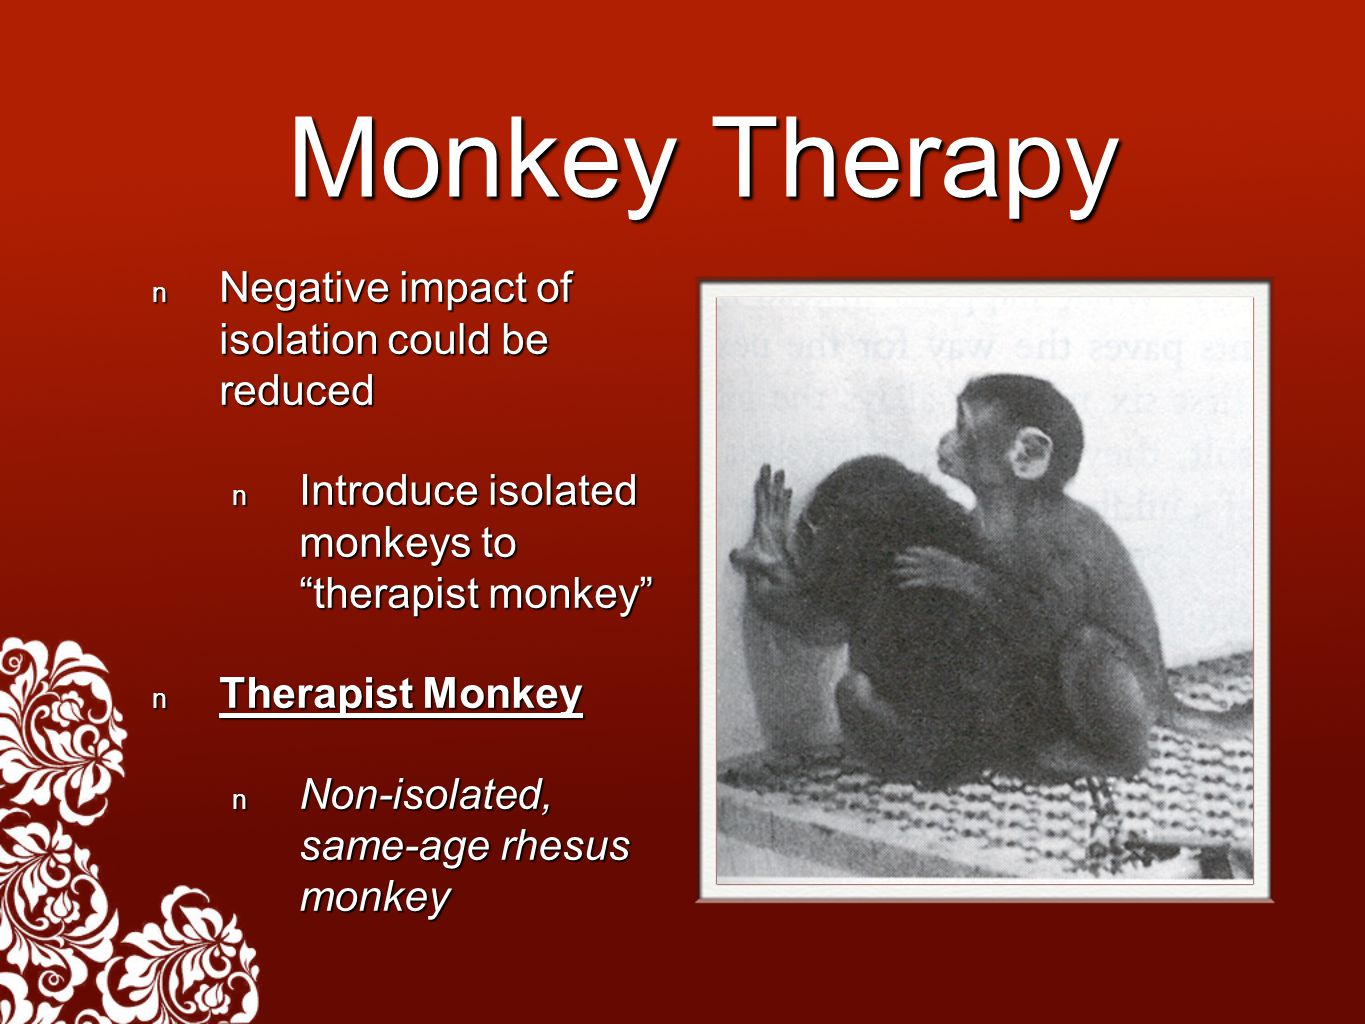 Monkey Therapy Negative impact of isolation could be reduced Negative impact of isolation could be reduced Introduce isolated monkeys to therapist monkey Introduce isolated monkeys to therapist monkey Therapist Monkey Therapist Monkey Non-isolated, same-age rhesus monkey Non-isolated, same-age rhesus monkey